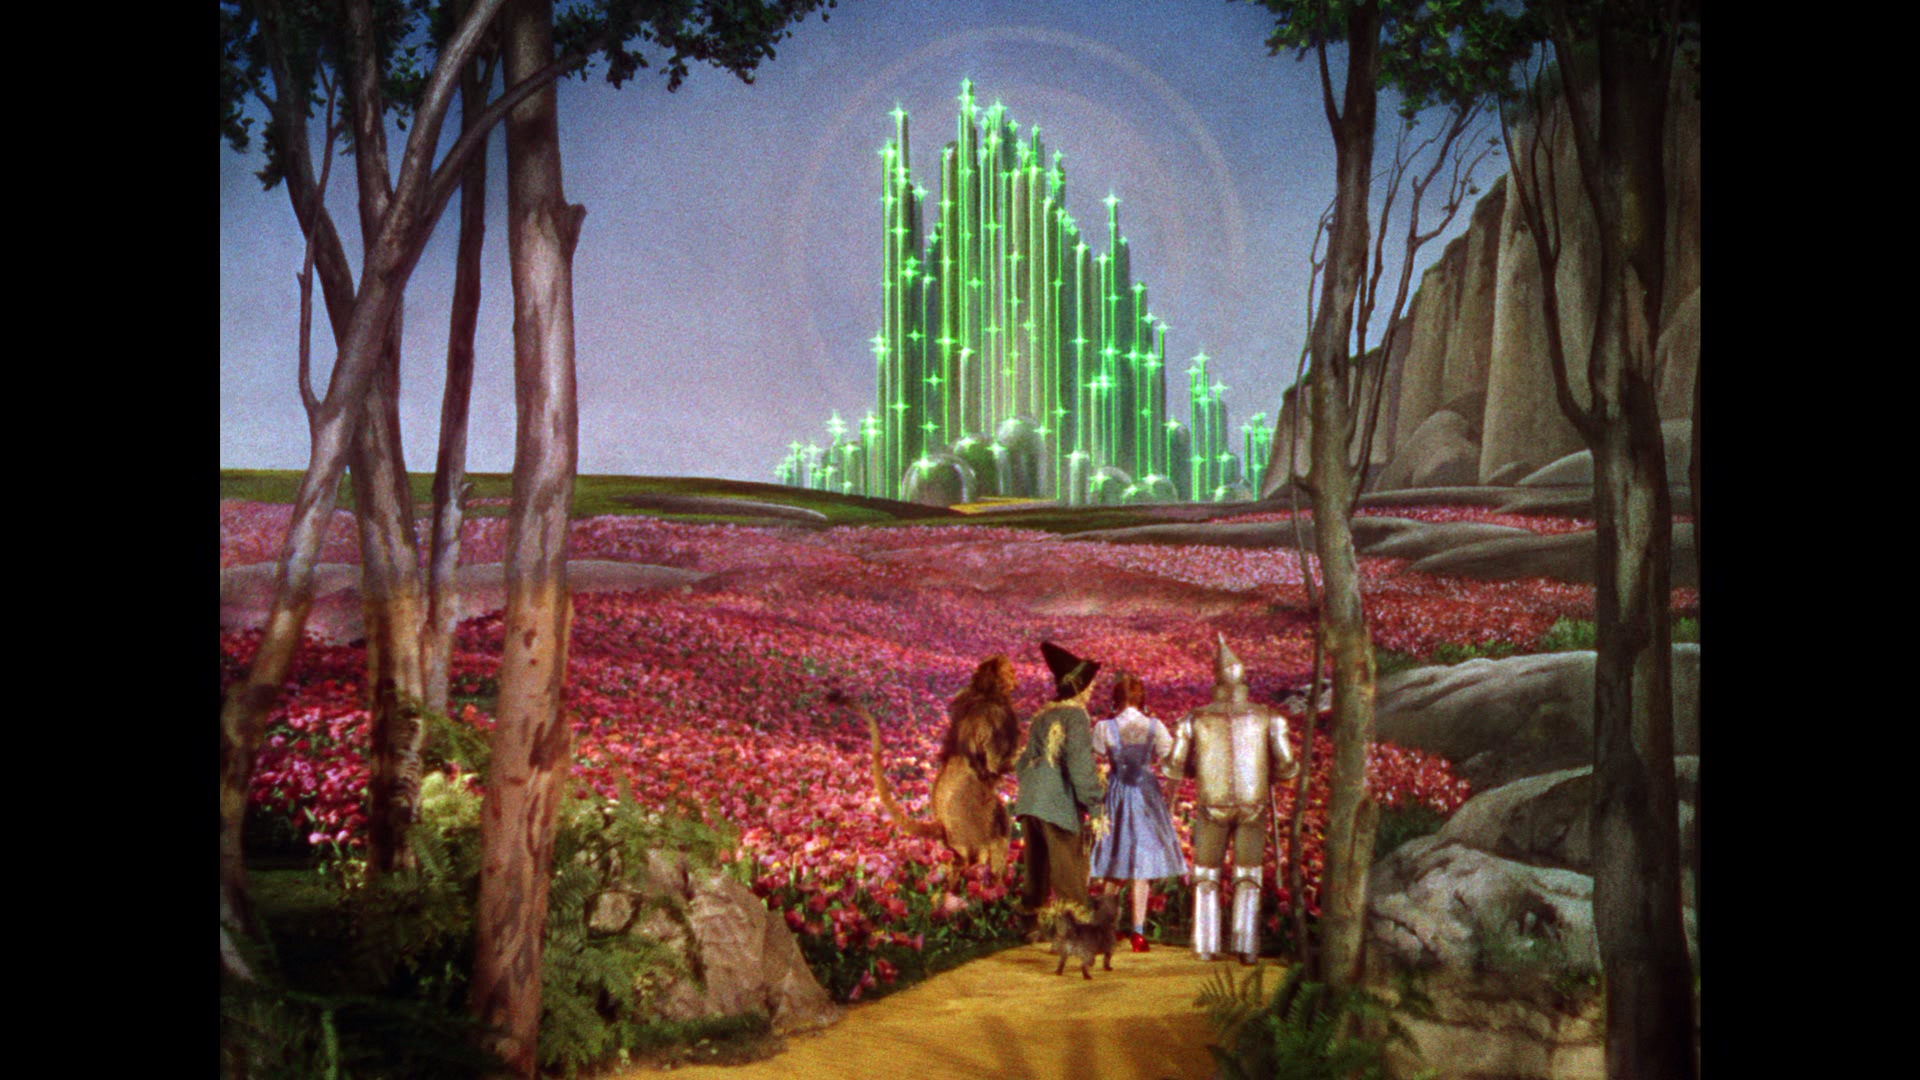 The wizard of oz alternate movie ending 5